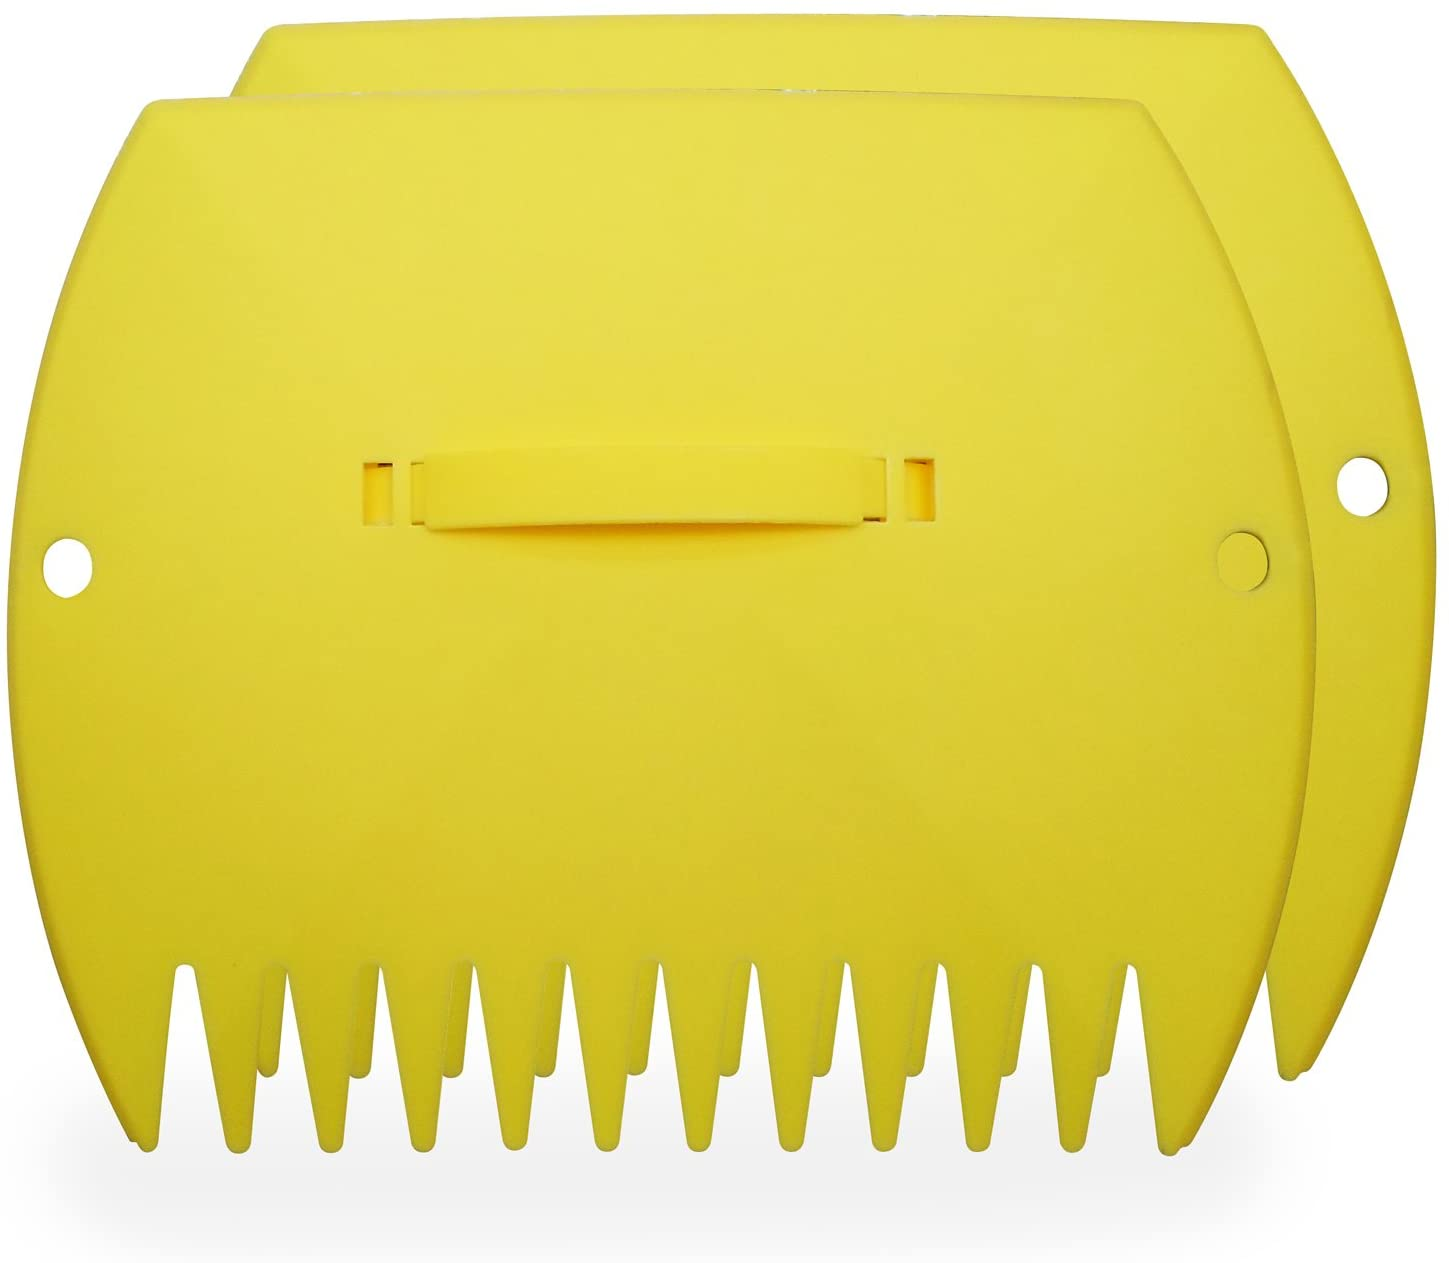 Garden and Yard Leaf Scoops Hand Rakes, Large Sized, Multiple Use for Leaves, Lawn Debris and Trash Pick Up Good Use 1 Pair : Garden & Outdoor